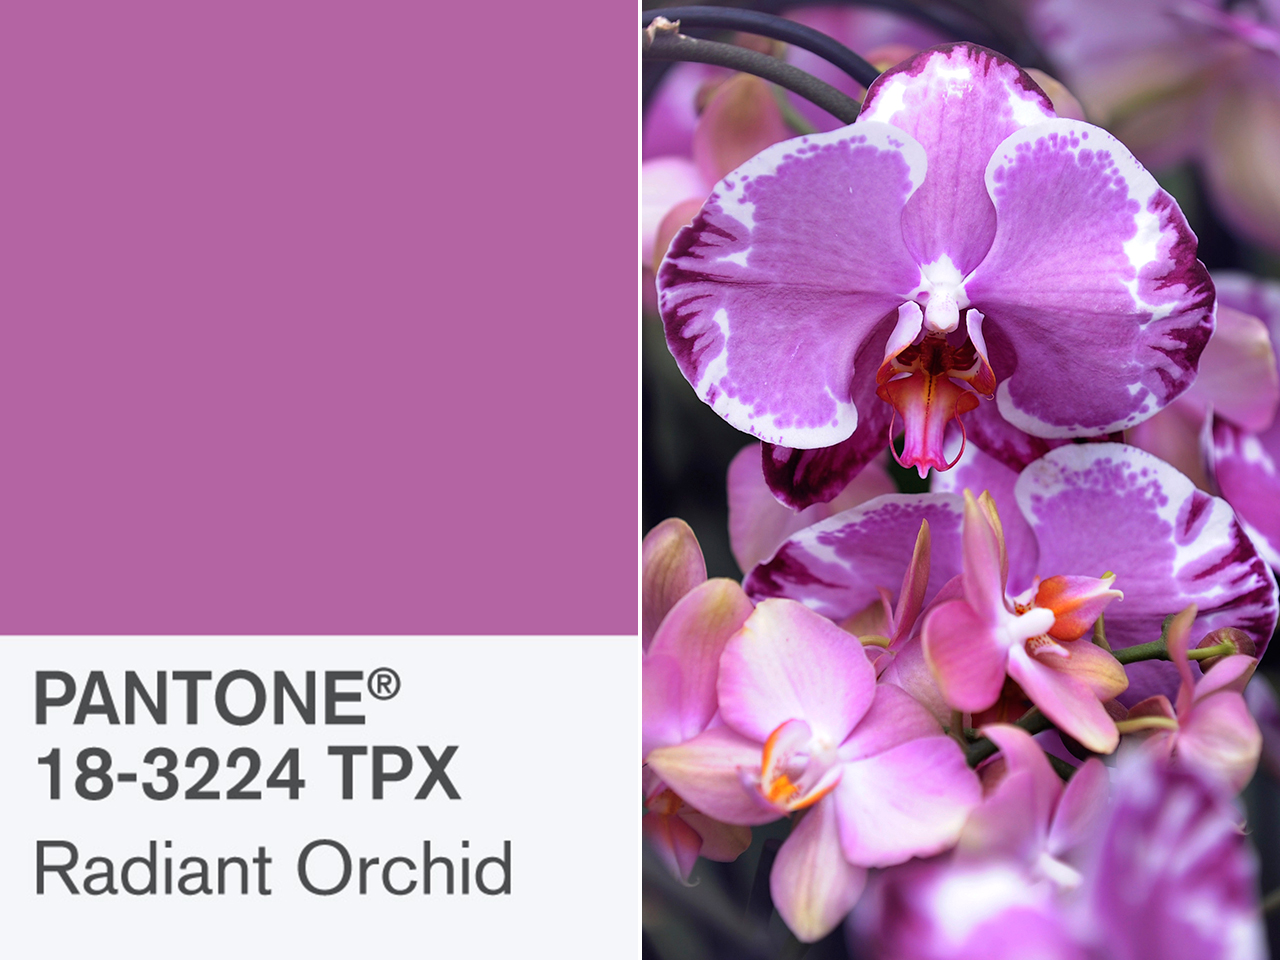 Pantone's Radiant Orchid is 2014's Color of the Year ...